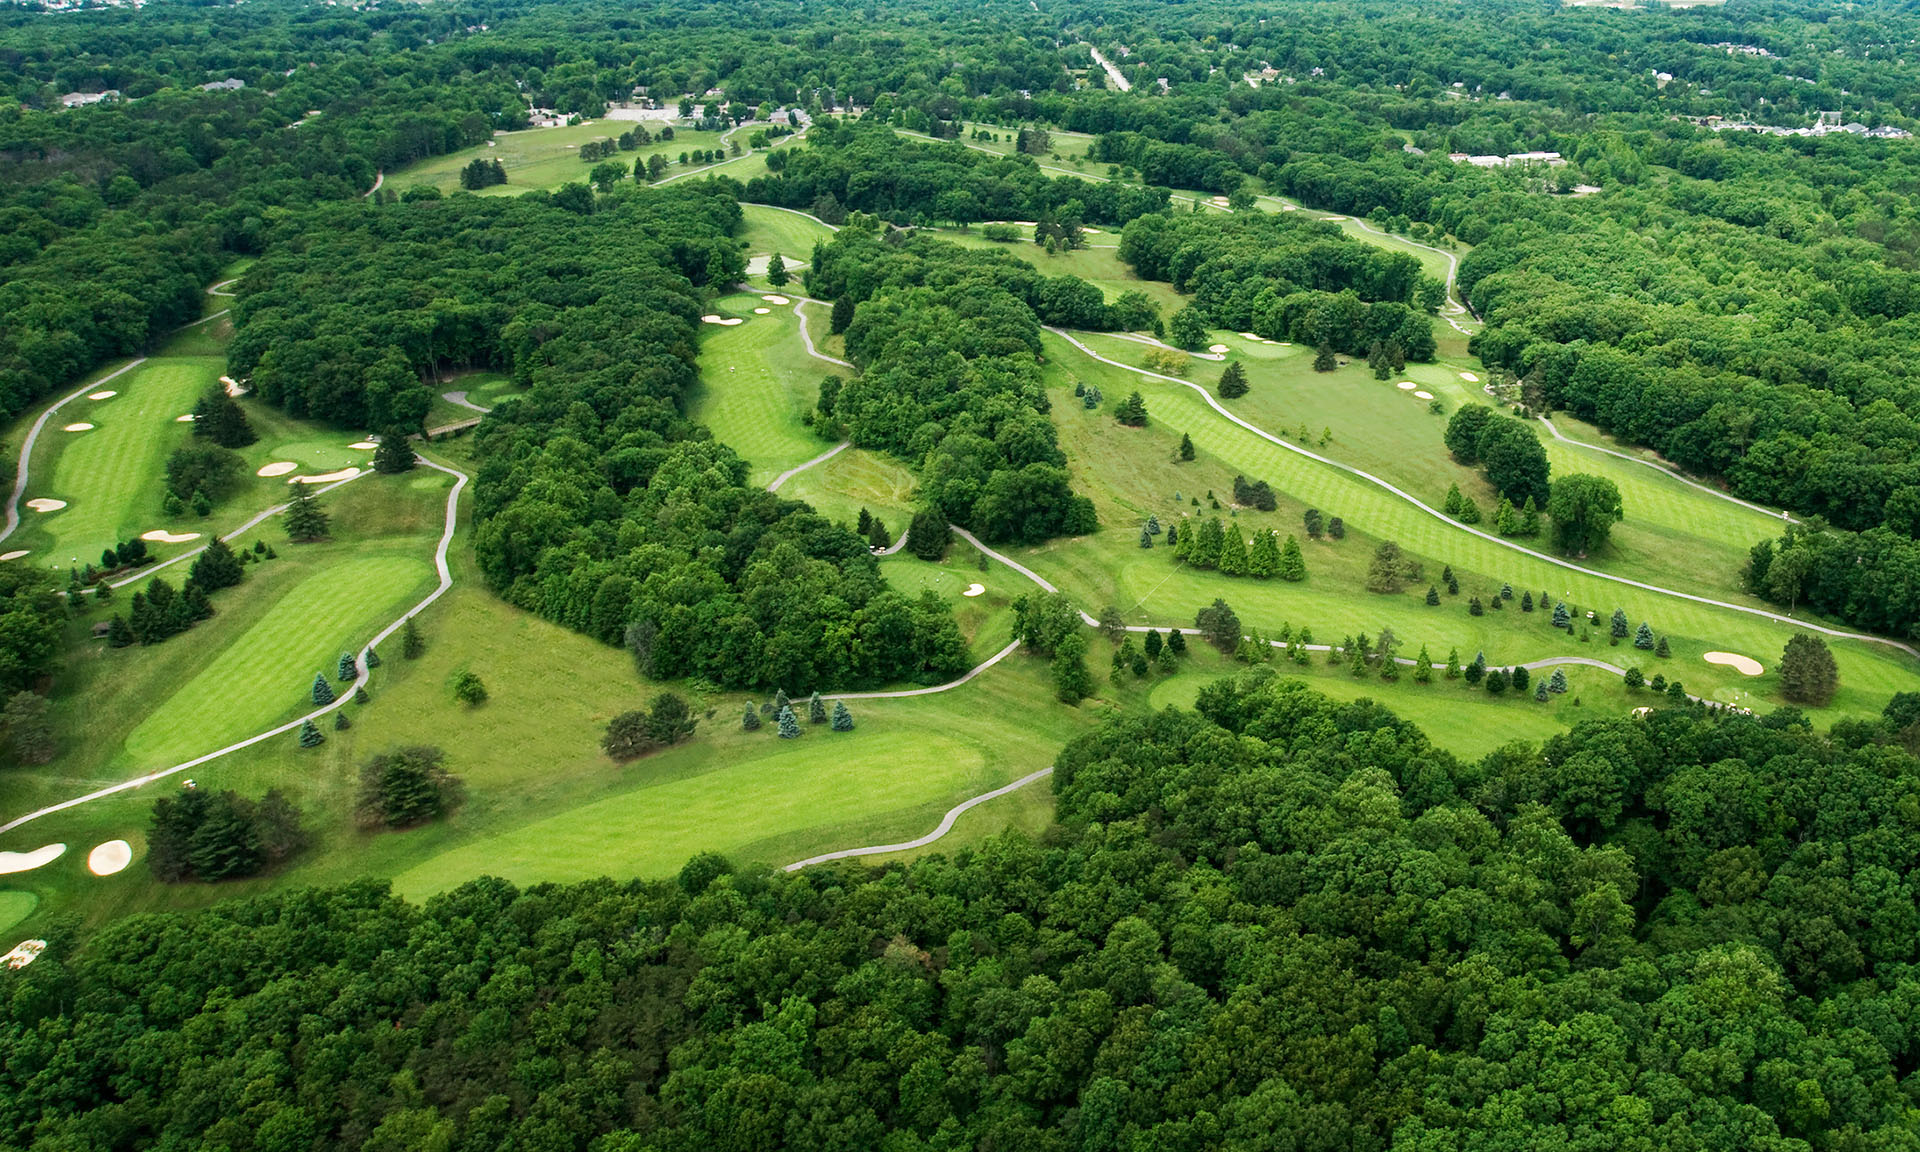 Arial view of Sleepy Hollow Golf Course